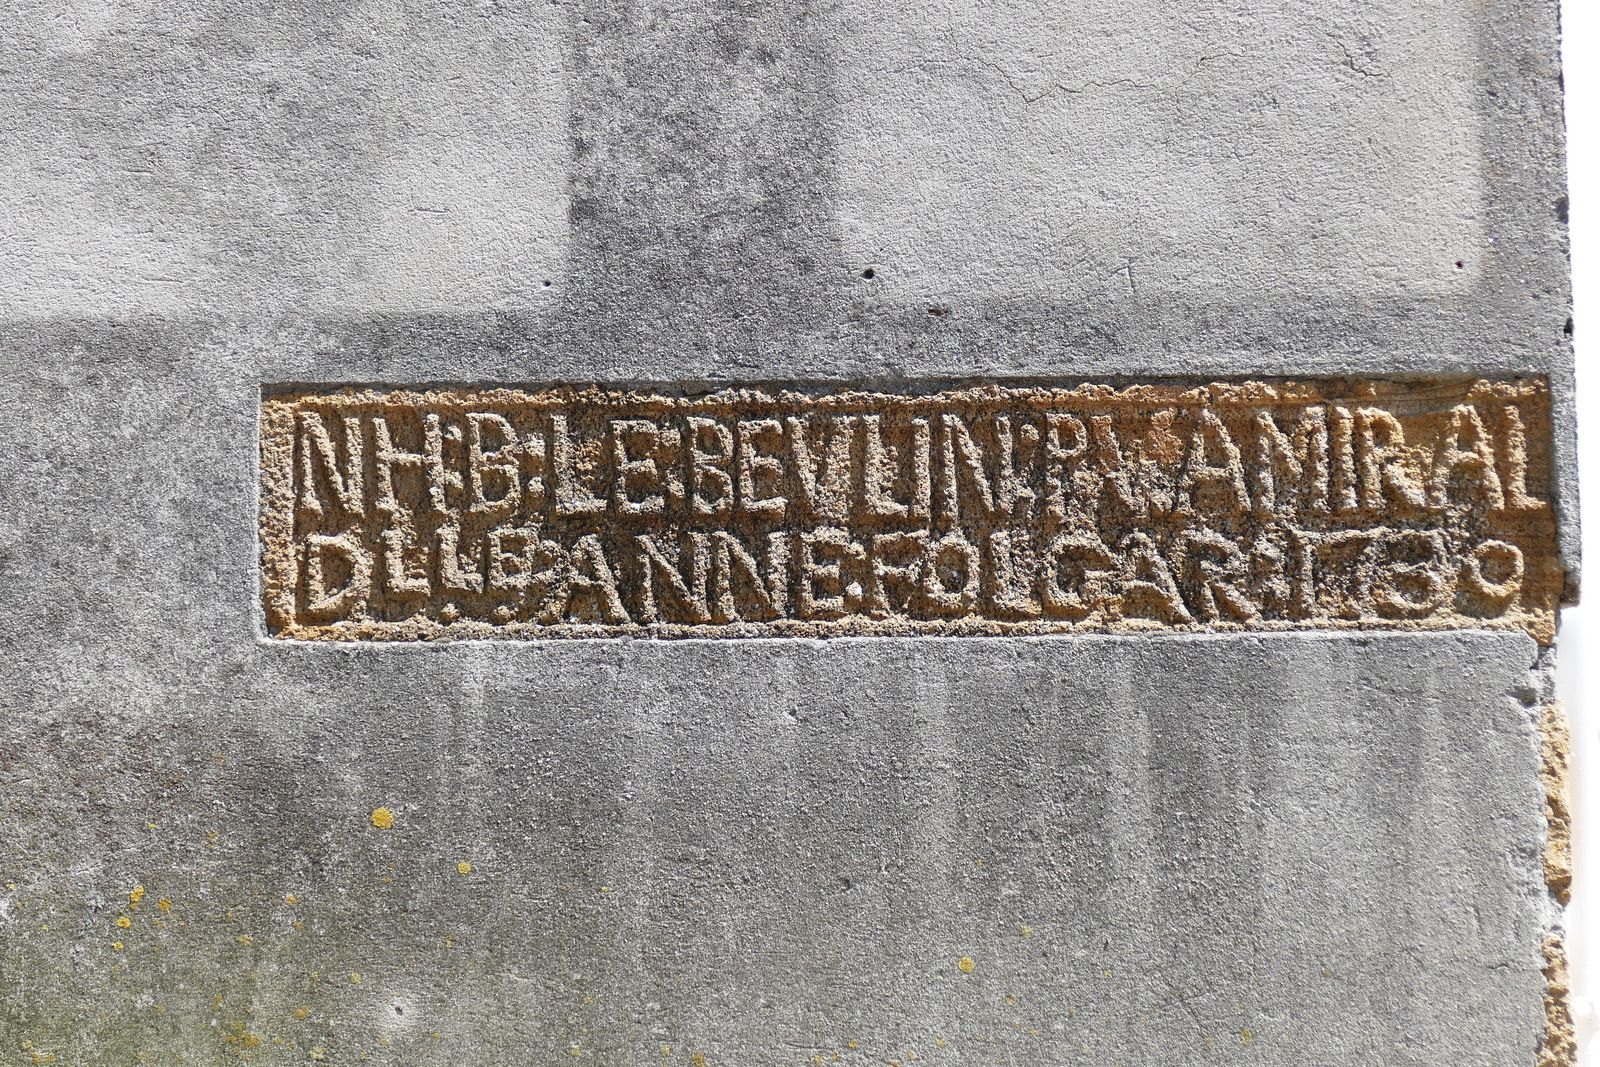 Inscription lapidaire de 1730, microdiorite quartzique, bourg de Lanvéoc. Photographie lavieb-aile mai 2020.